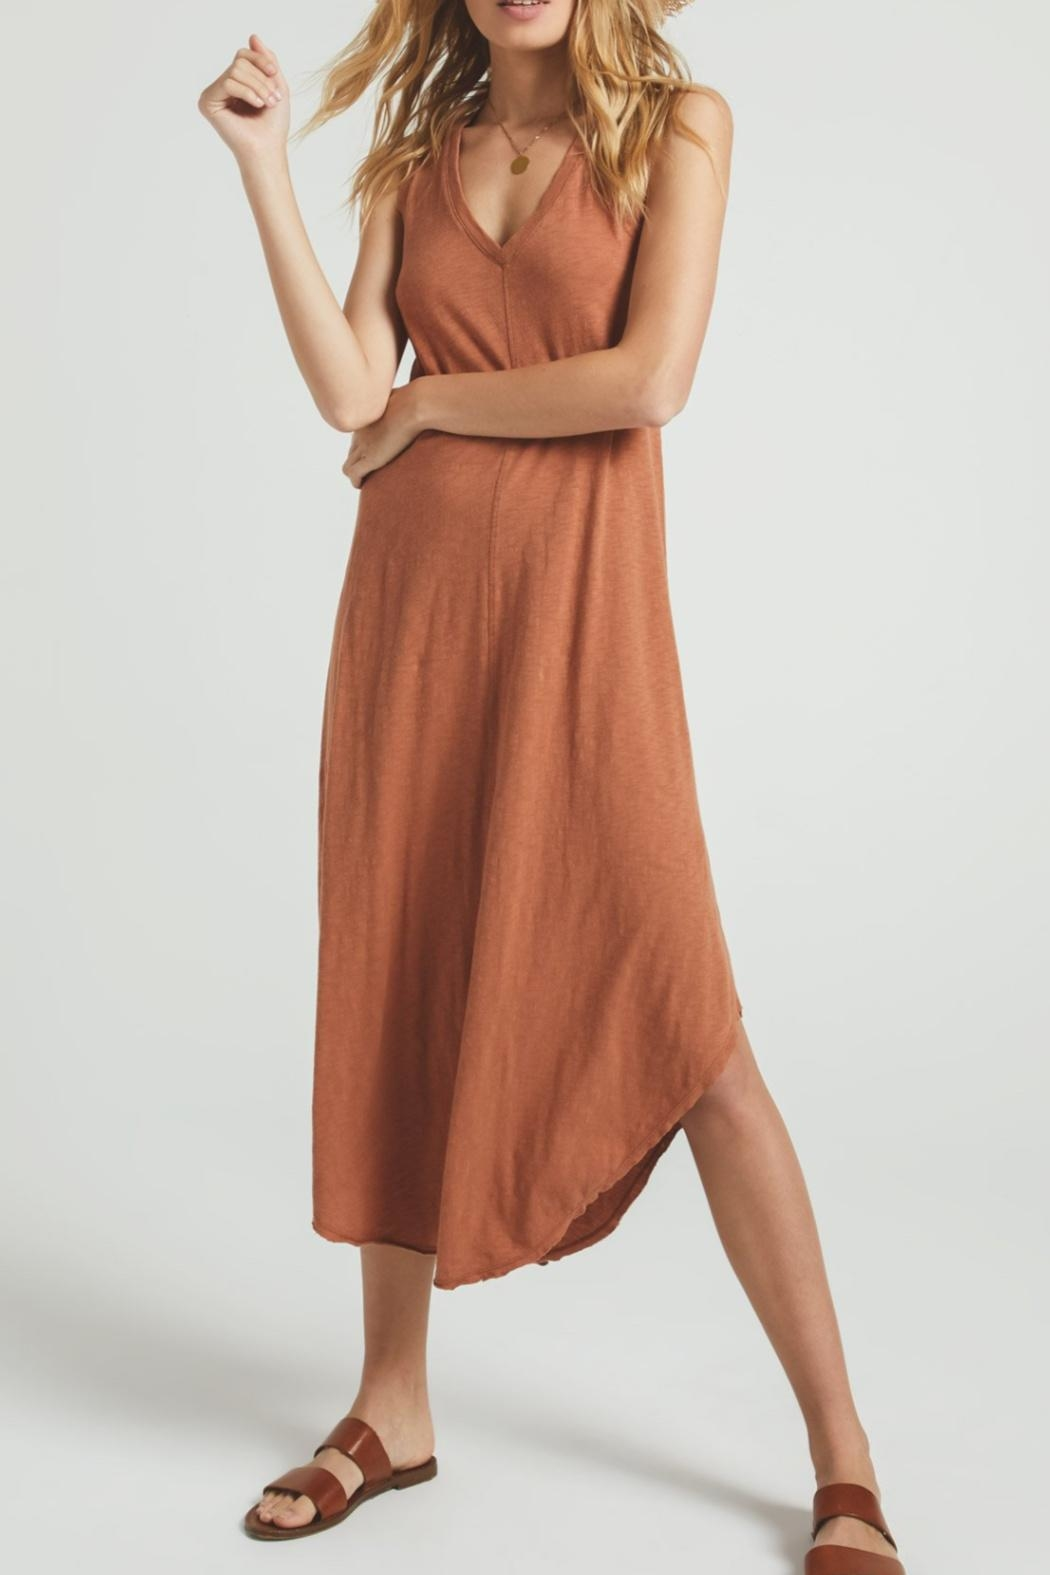 z supply Reverie Brown Dress - Back Cropped Image